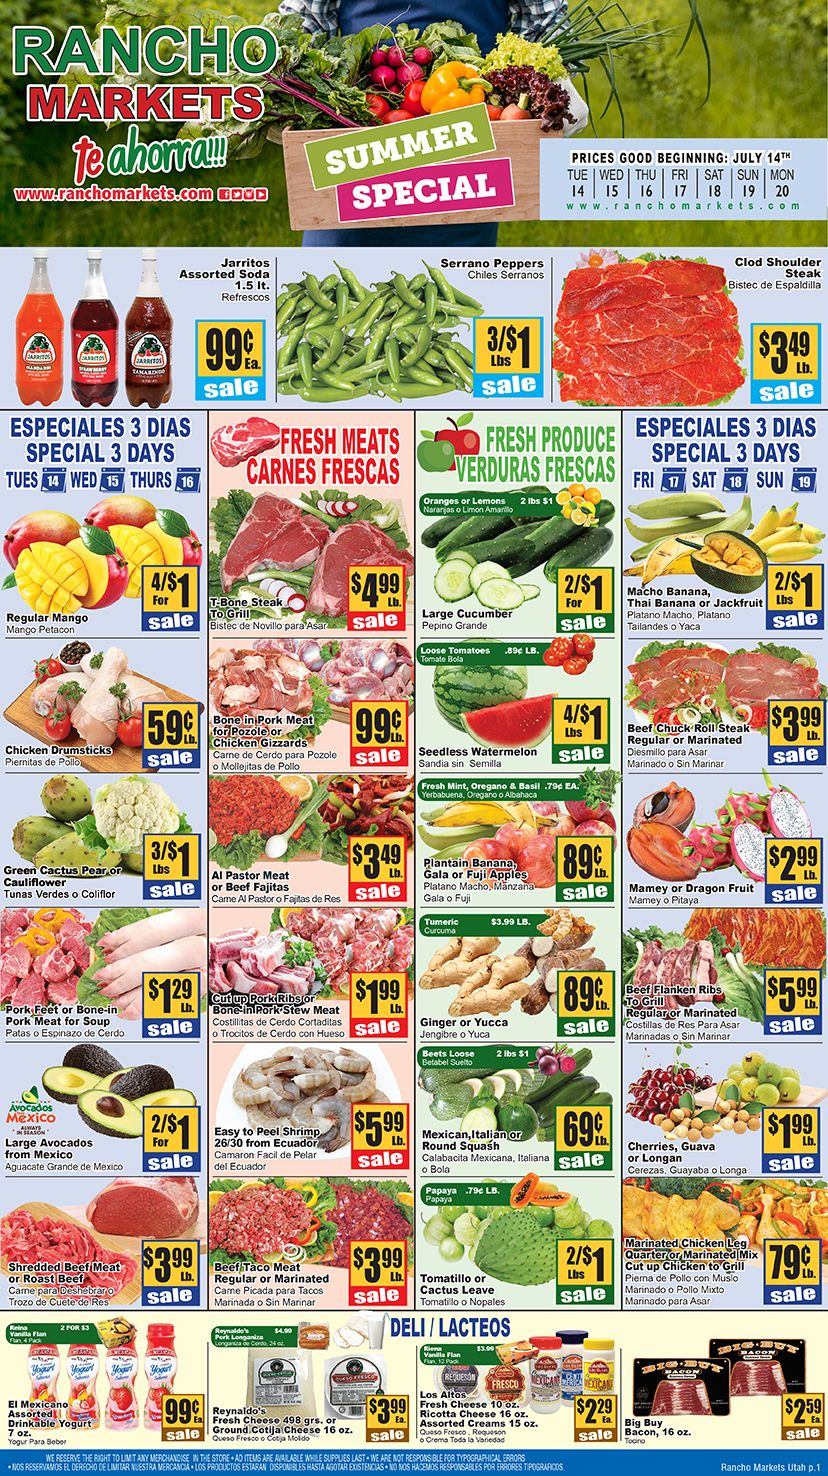 Rancho Market Weekly Ad June 14th July 20th, 2020 in